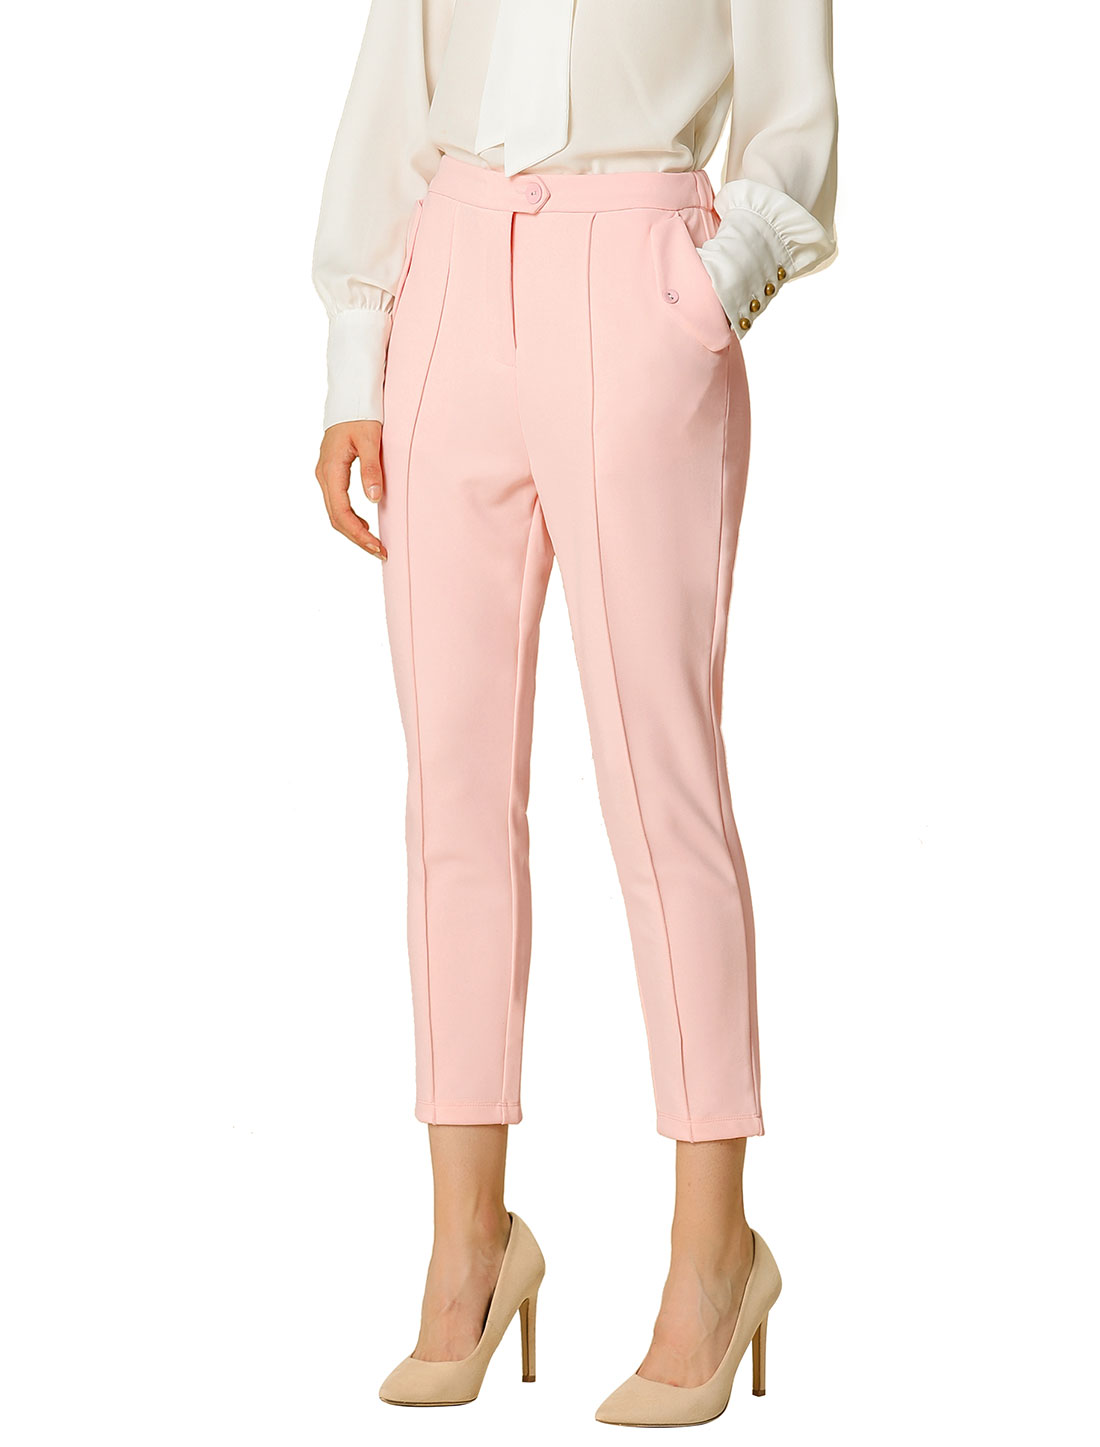 Allegra K Women's Work Pants Slim Stretchy Cropped Trousers Pink XS